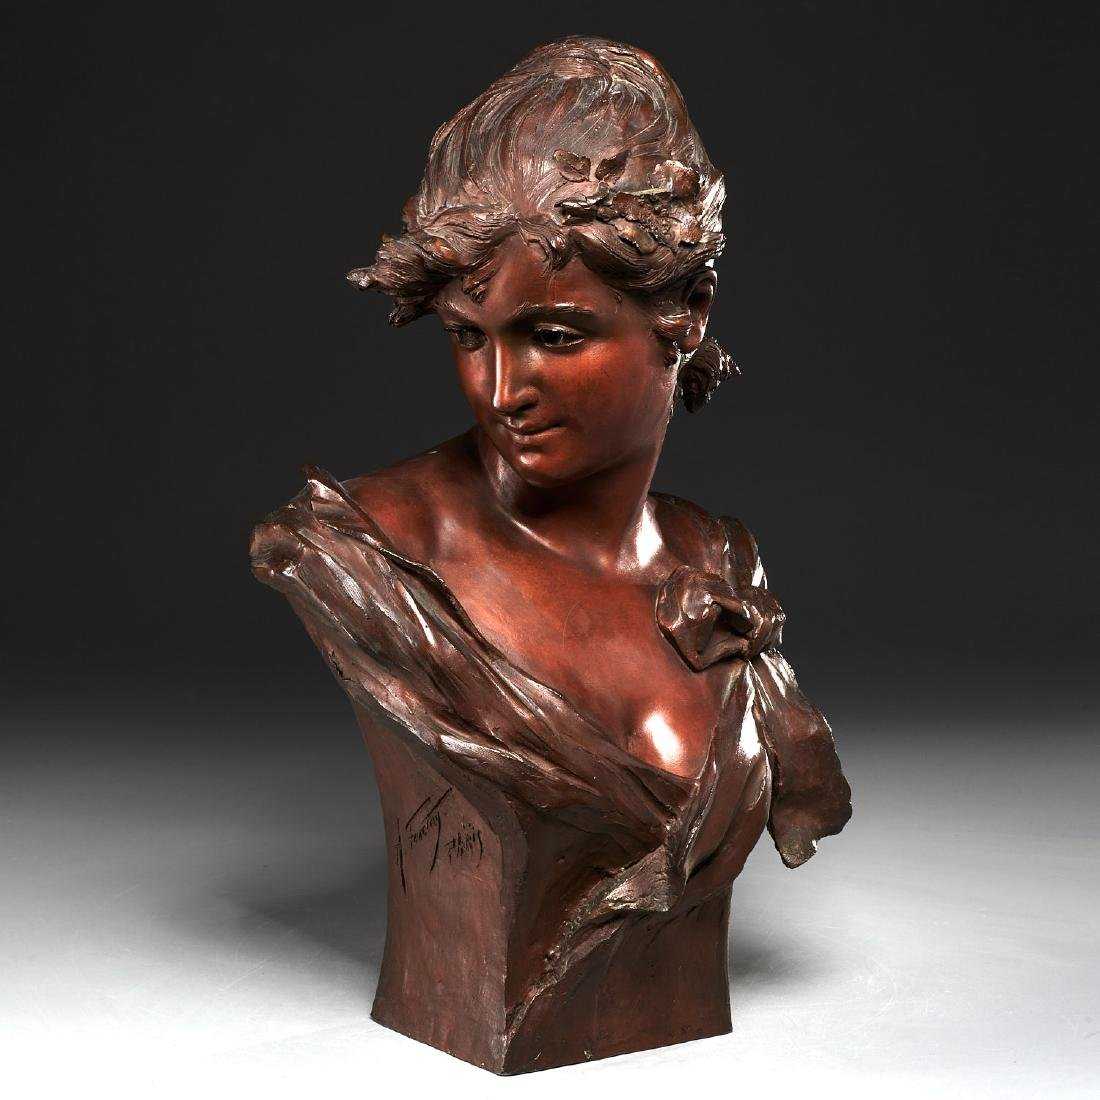 Alfred Jean Foretay, Bust of Woman, c. 1890